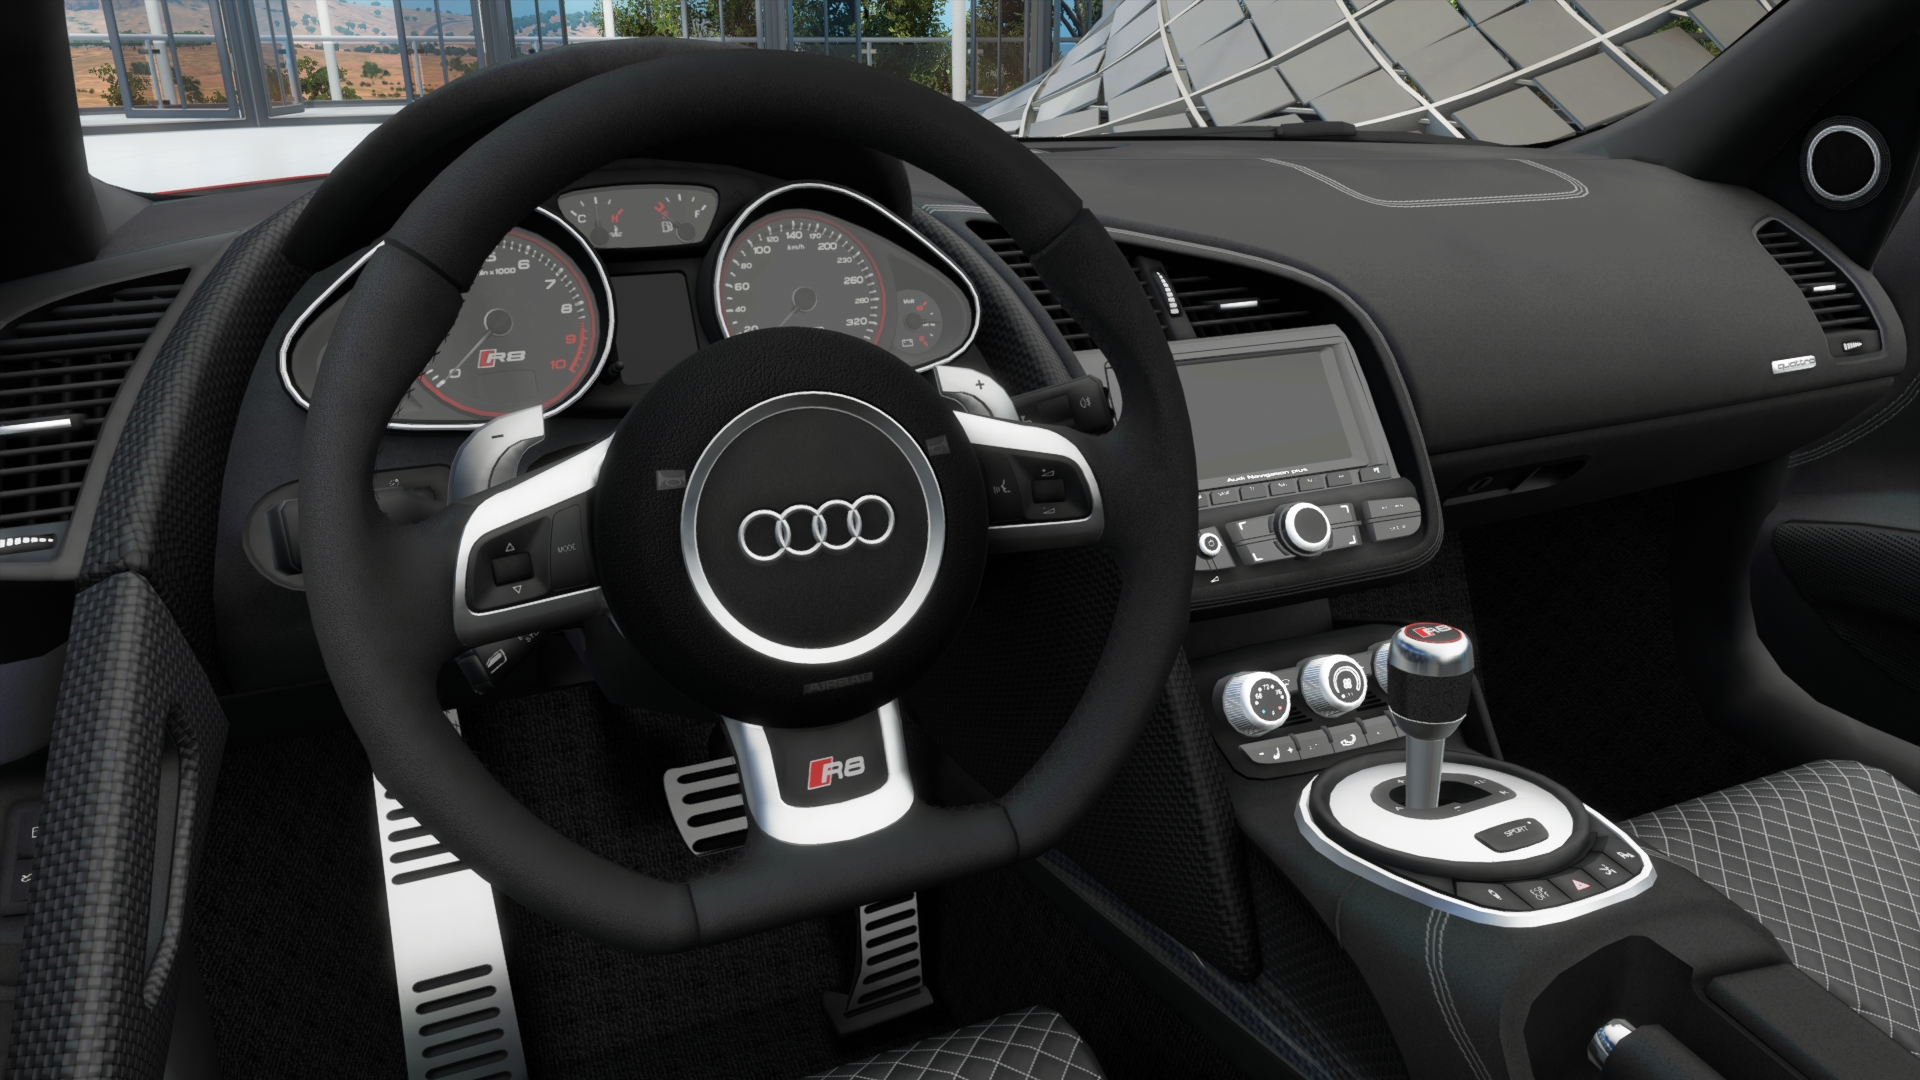 https://vignette.wikia.nocookie.net/forzamotorsport/images/b/b4/FH3_Audi_R8_13_Interior.jpg/revision/latest?cb=20180822104723